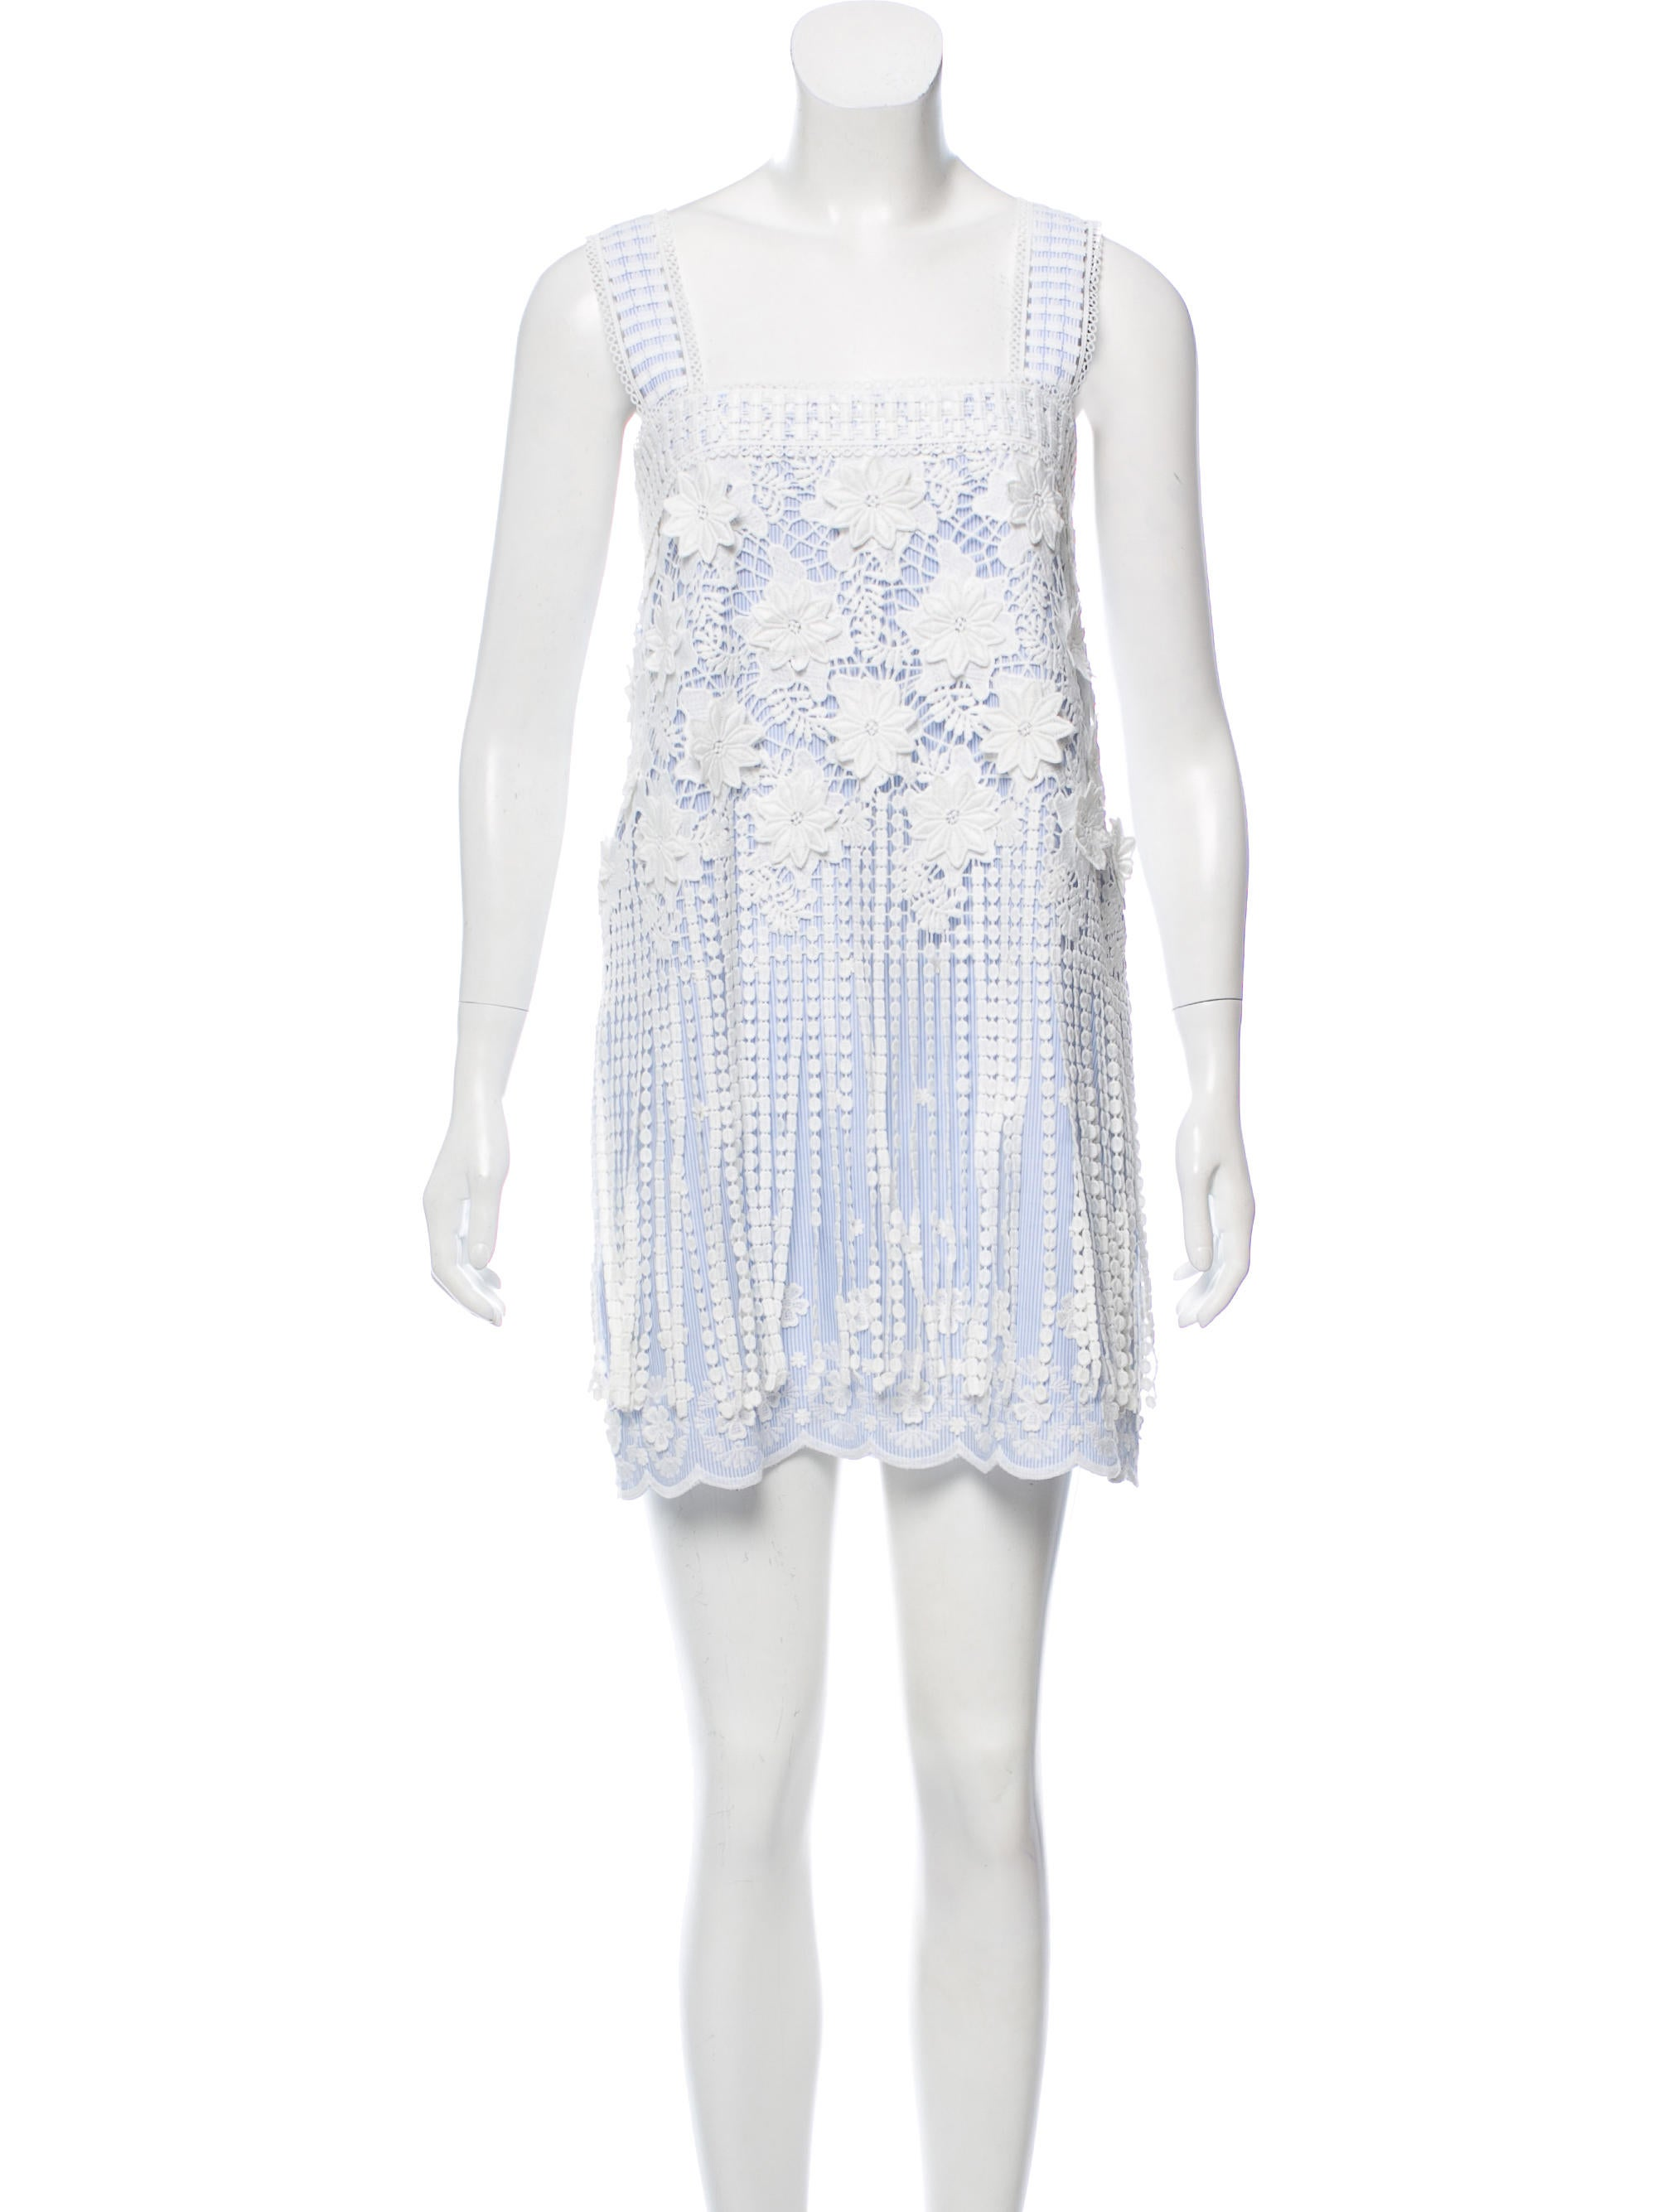 04b194c9826 Alexis Guipure Lace Fulton Dress w  Tags - Clothing - WEX26428